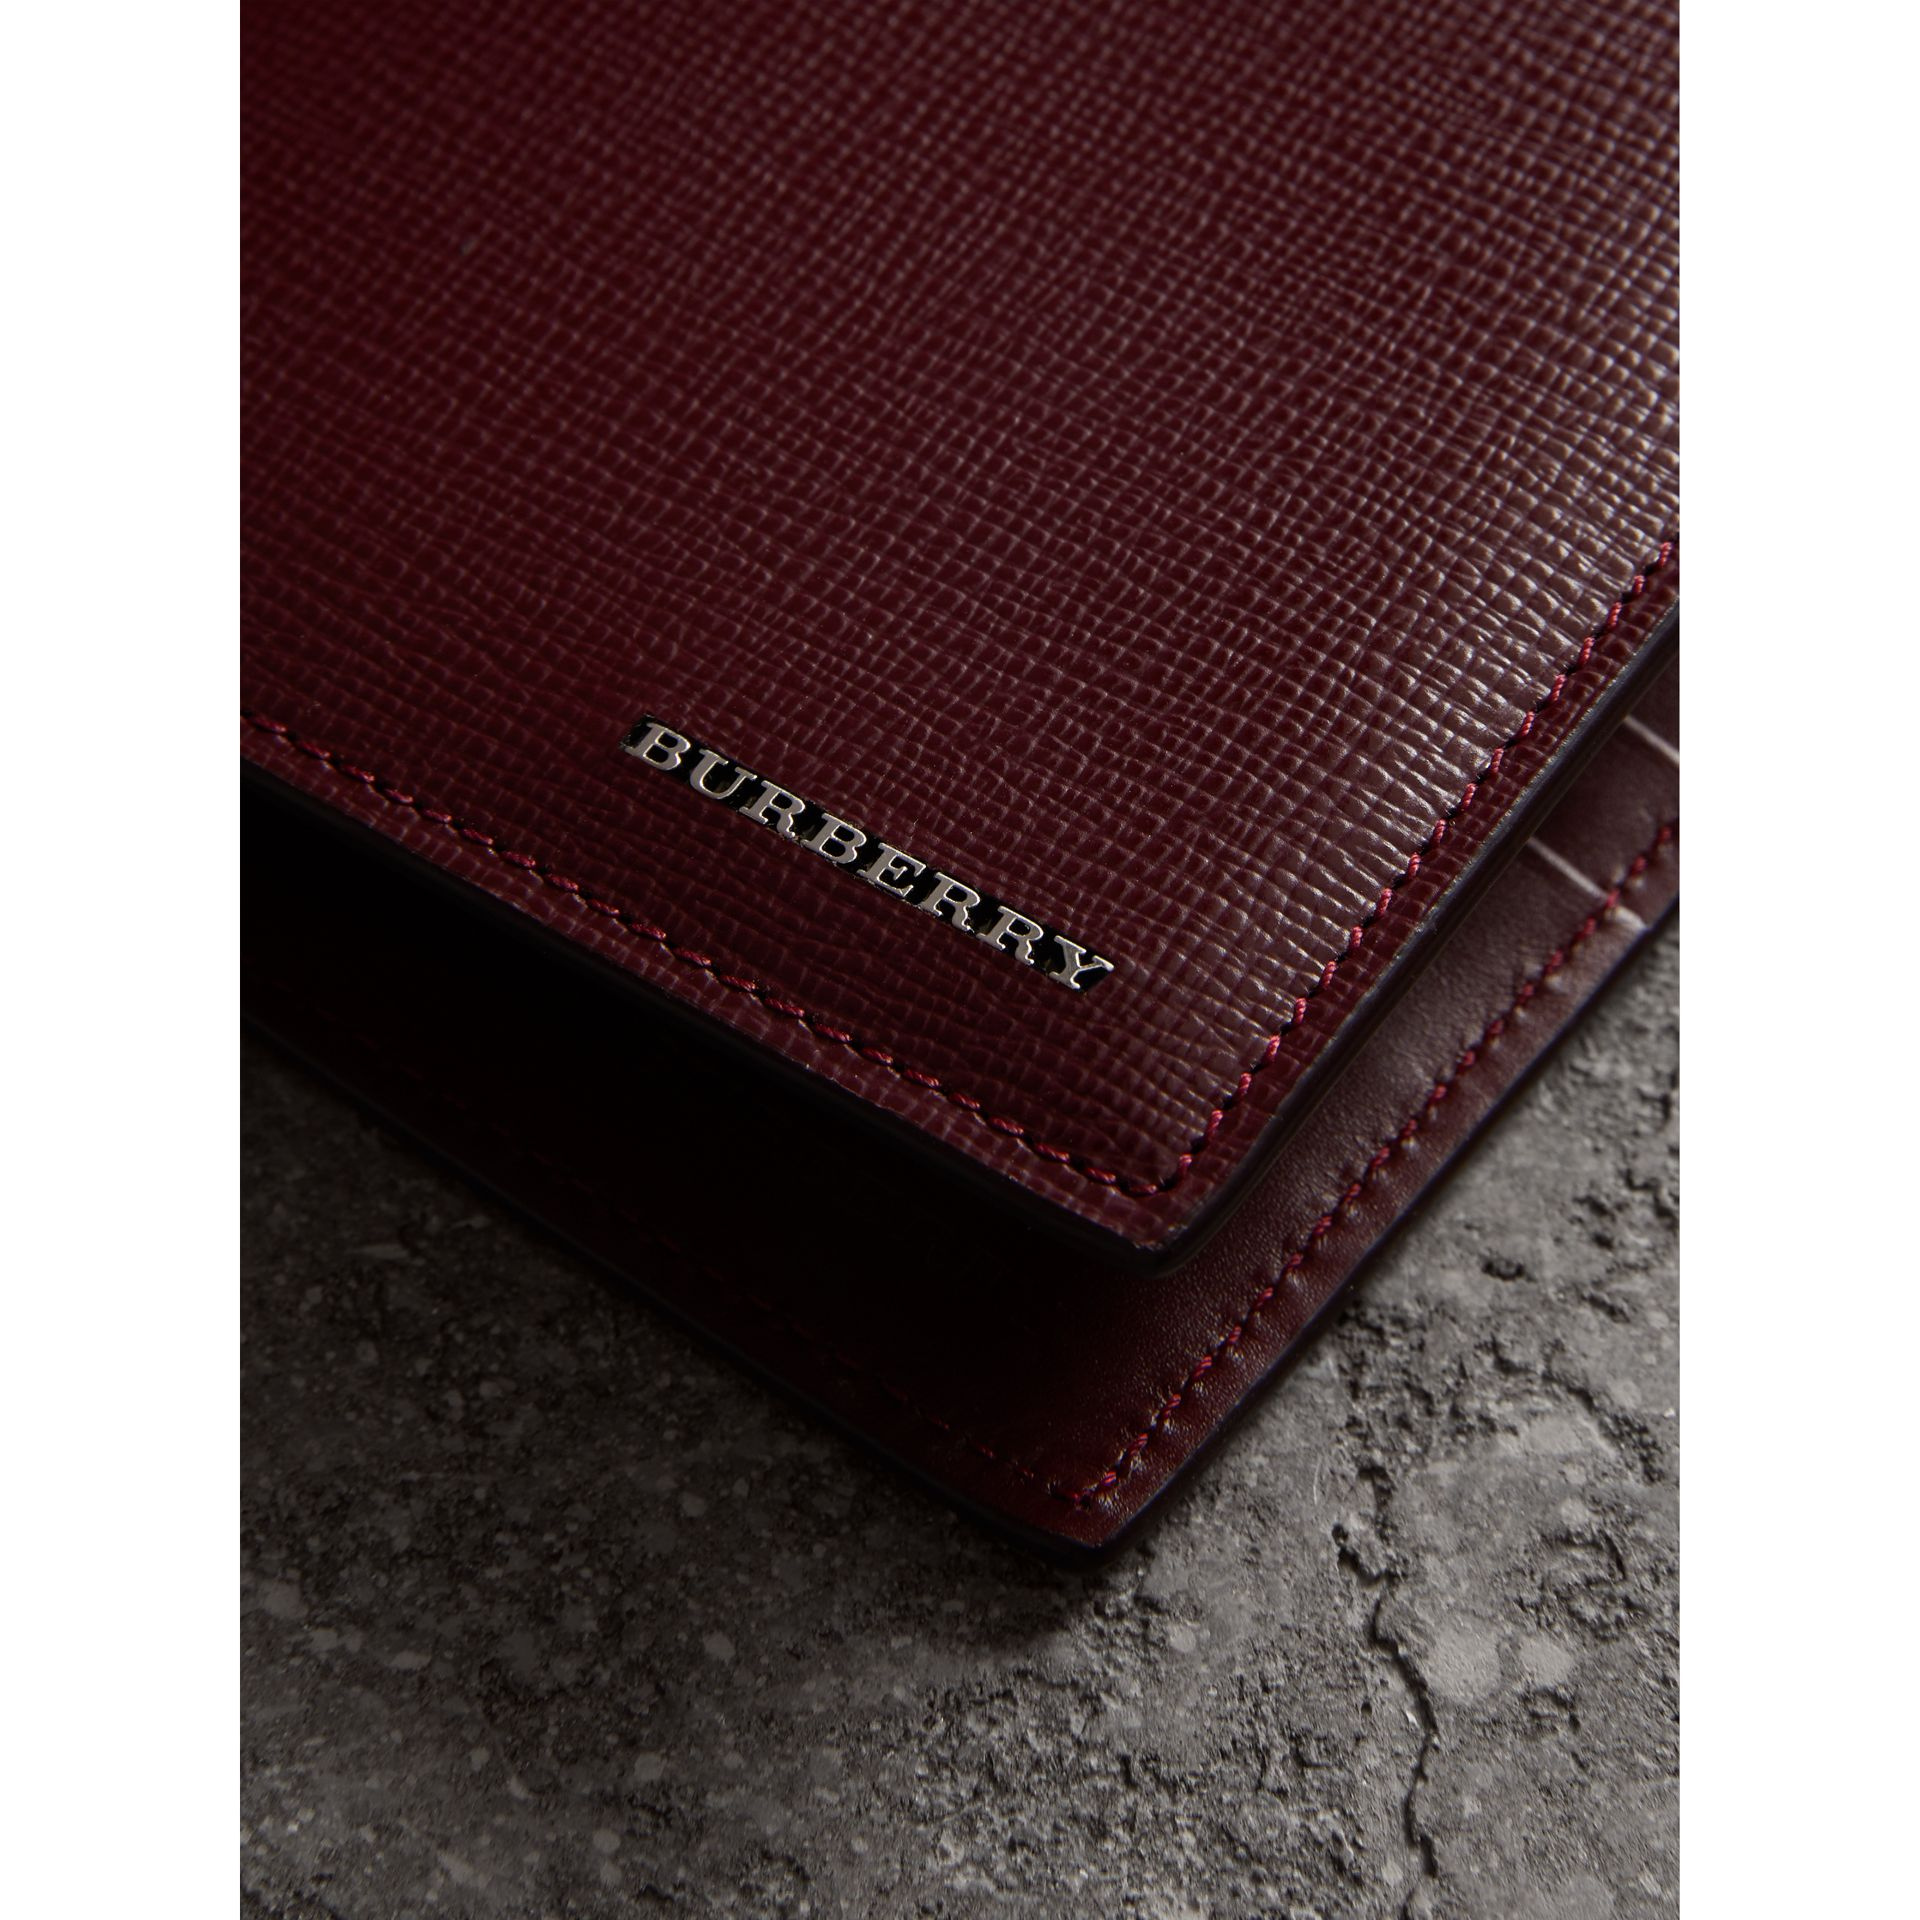 London Leather International Bifold Wallet in Burgundy Red | Burberry - gallery image 1